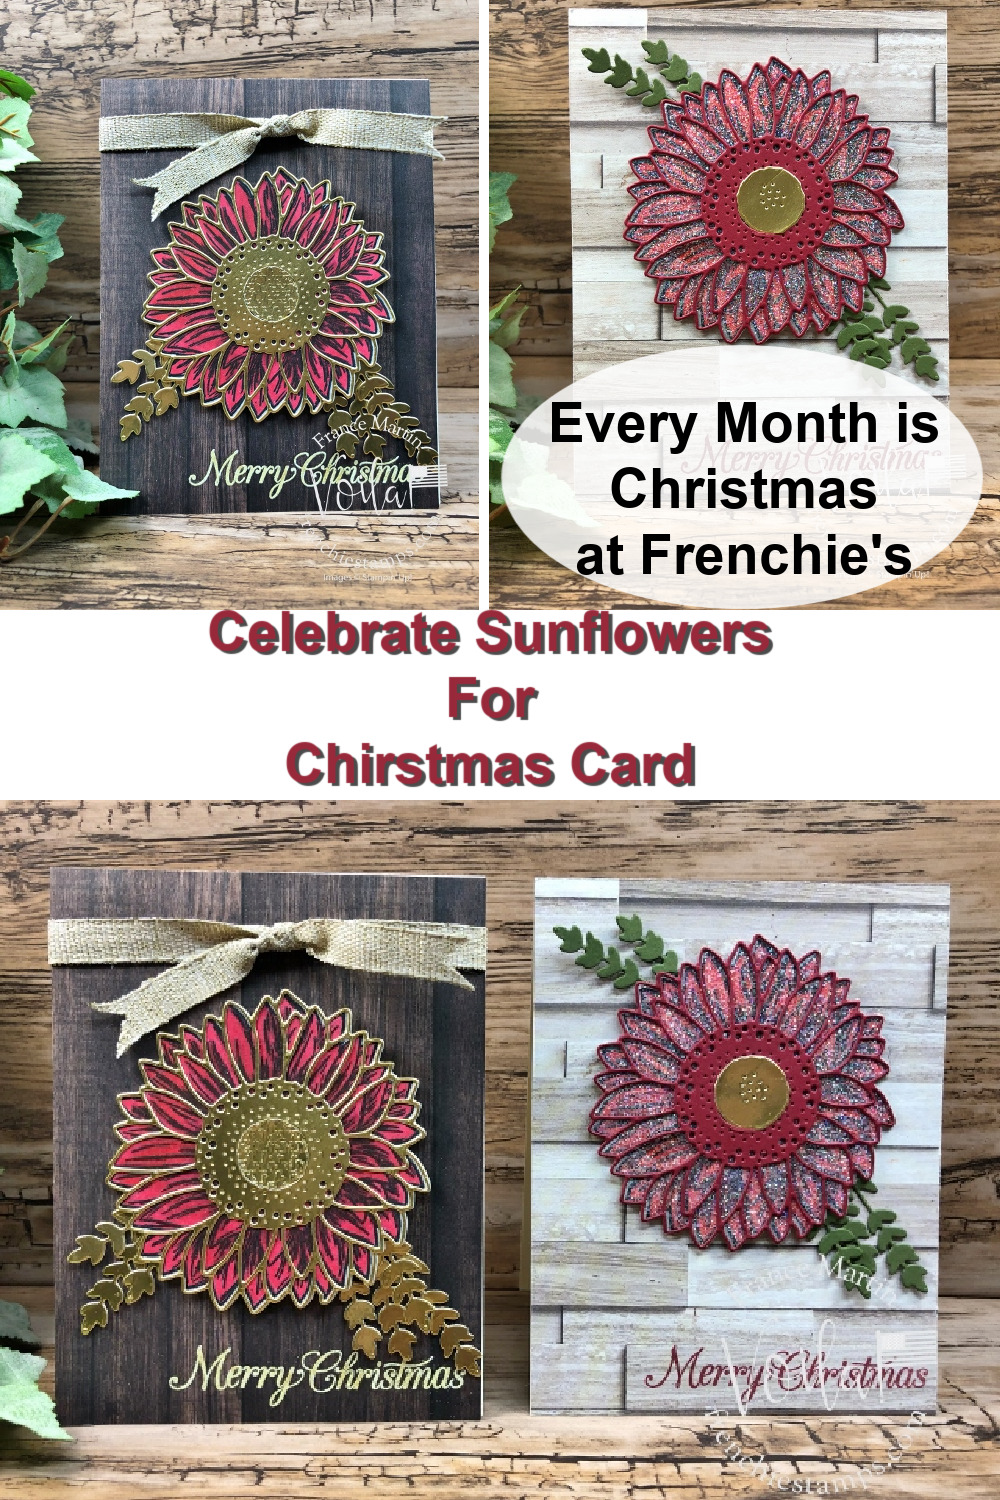 Celebrate Sunflowers For Christmas Card